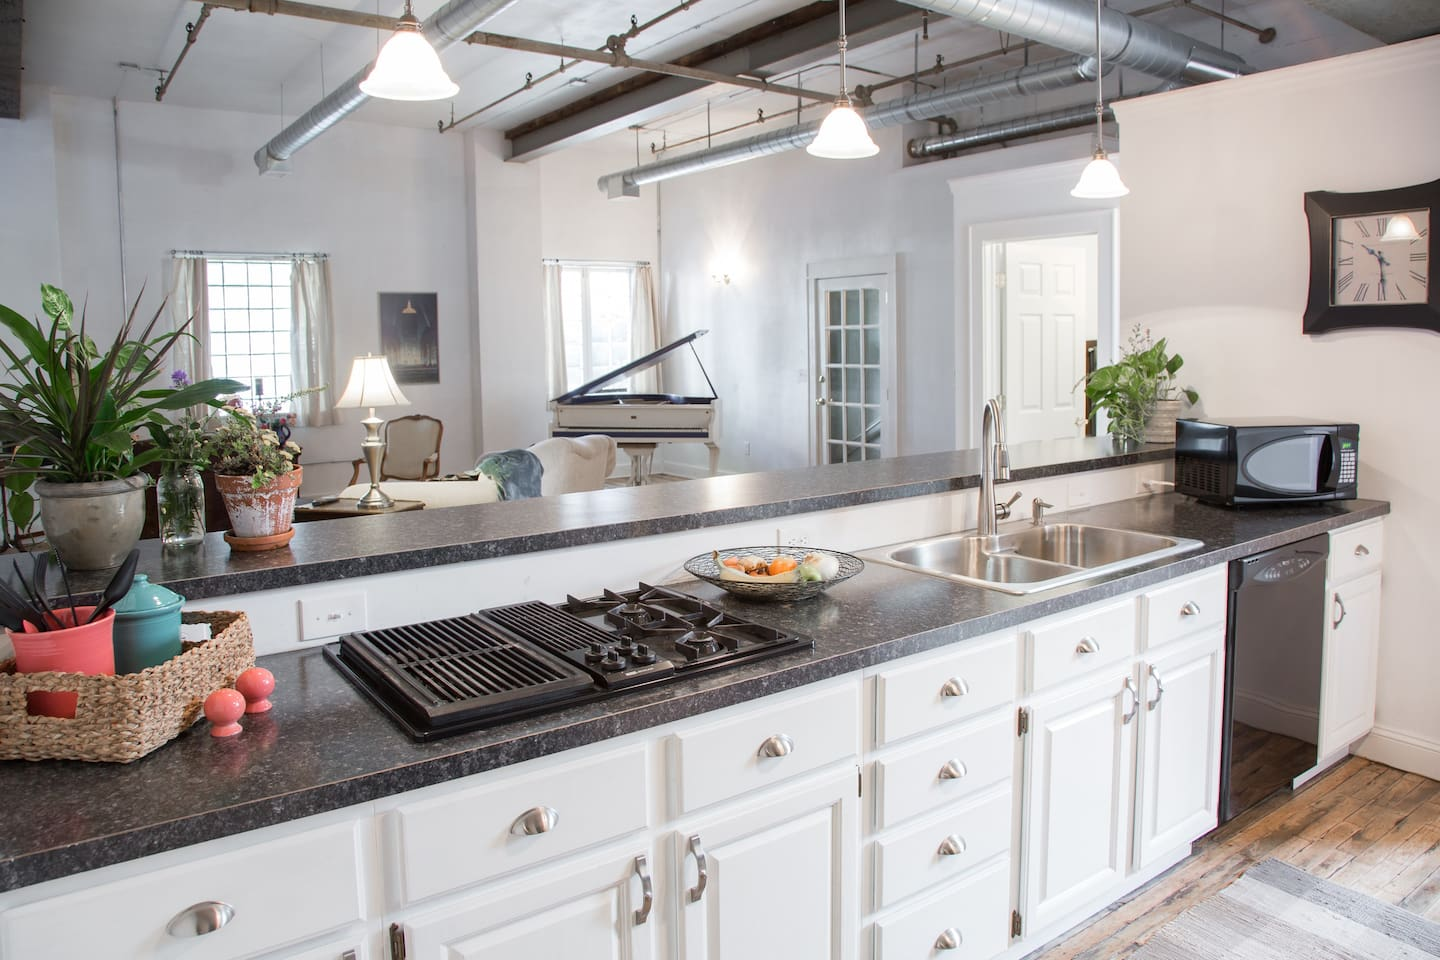 The spacious galley-style kitchen is open to the living space and if you decide not to eat out, it has all of the necessities you need for cooking at home.